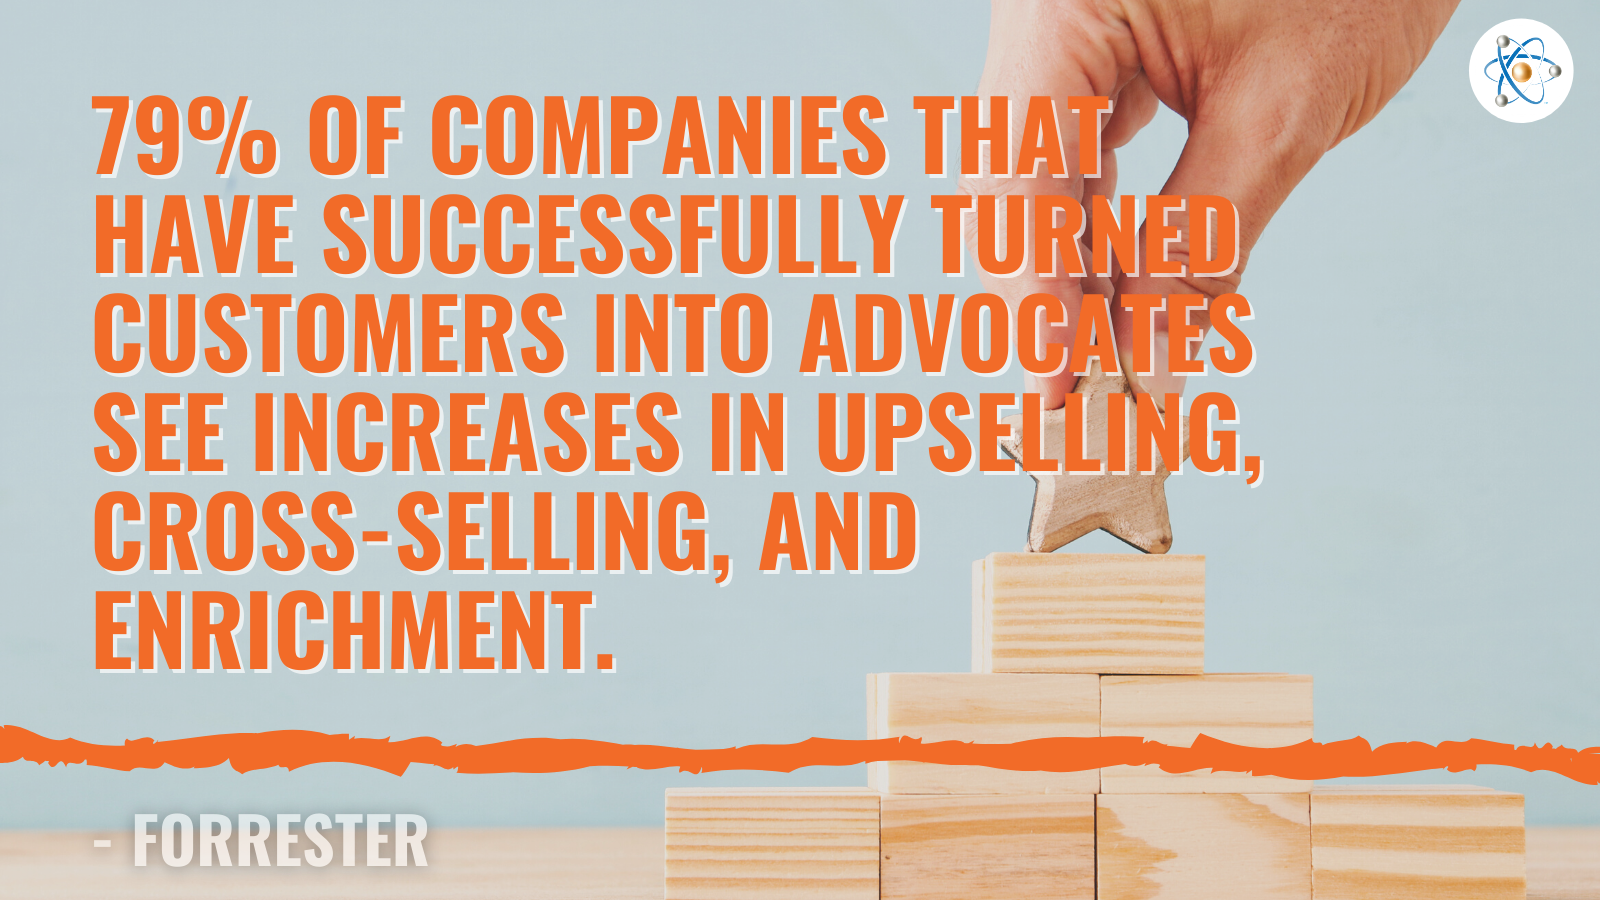 79% companies successfully turned customers into advocates increases upsell cross-sell enrichment atomic revenue